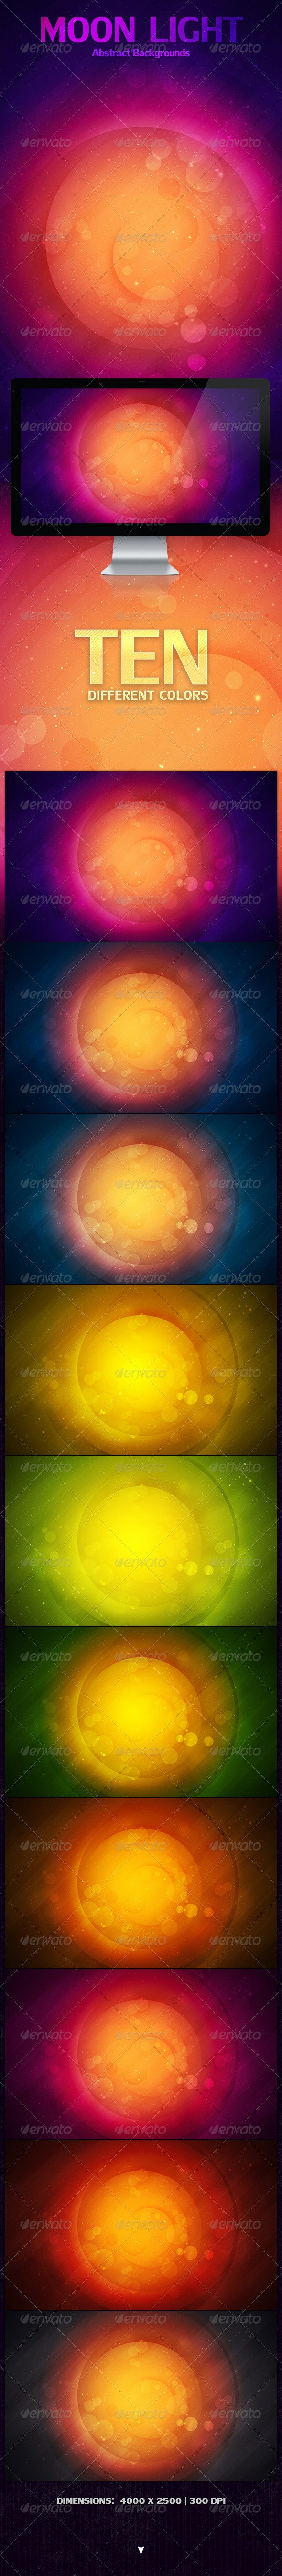 Moon Light Abstract Backgrounds - Abstract Backgrounds